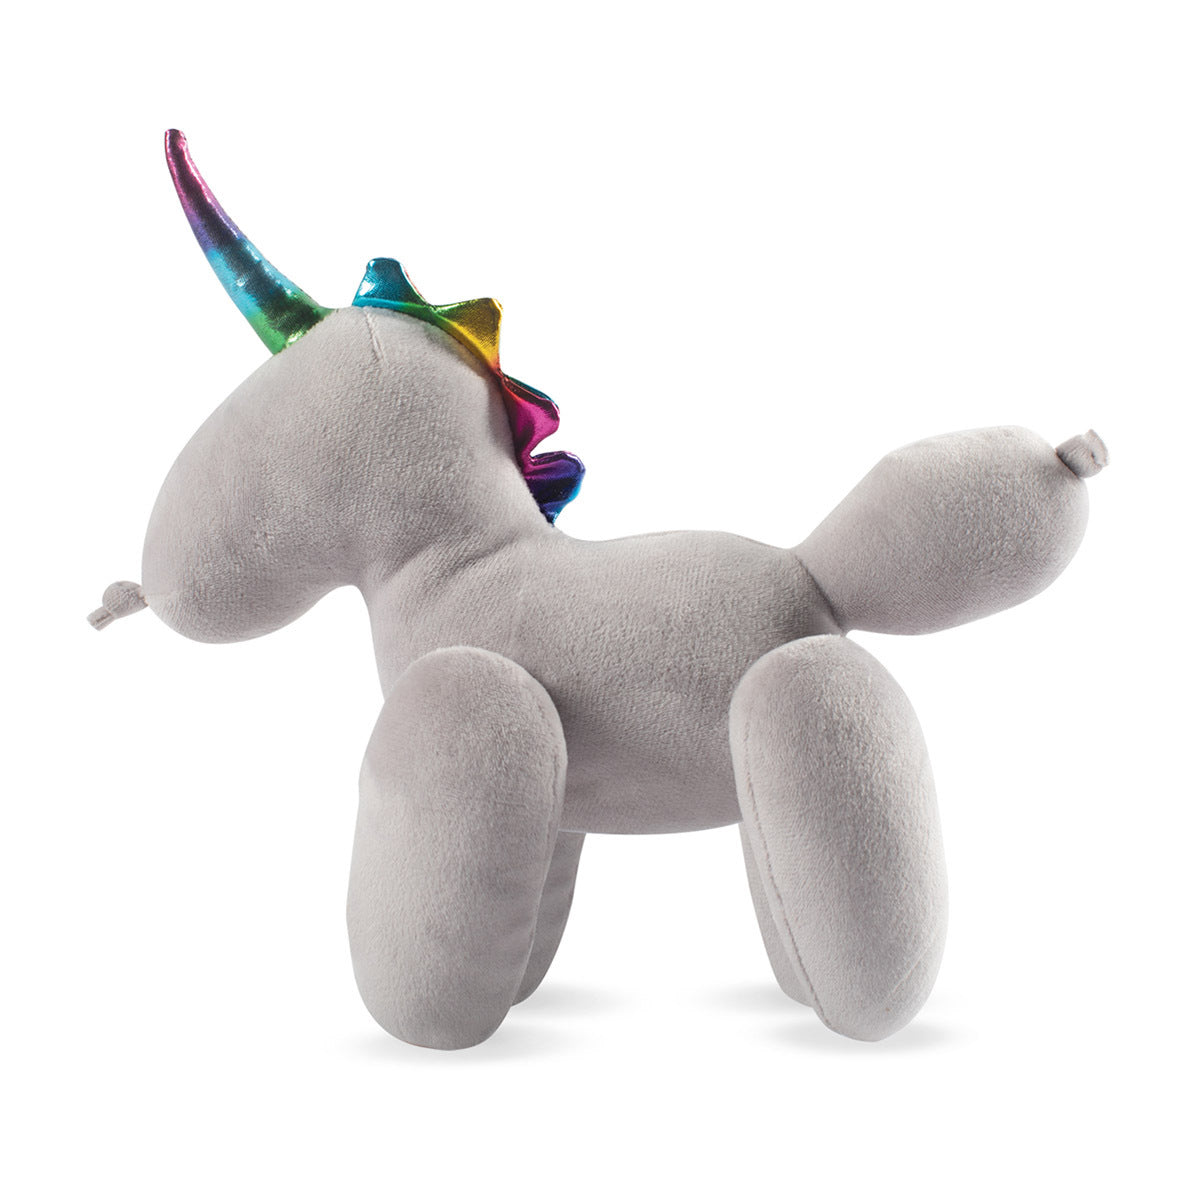 Fringe Studio Unicorn Balloon Animal Plush Dog Toy